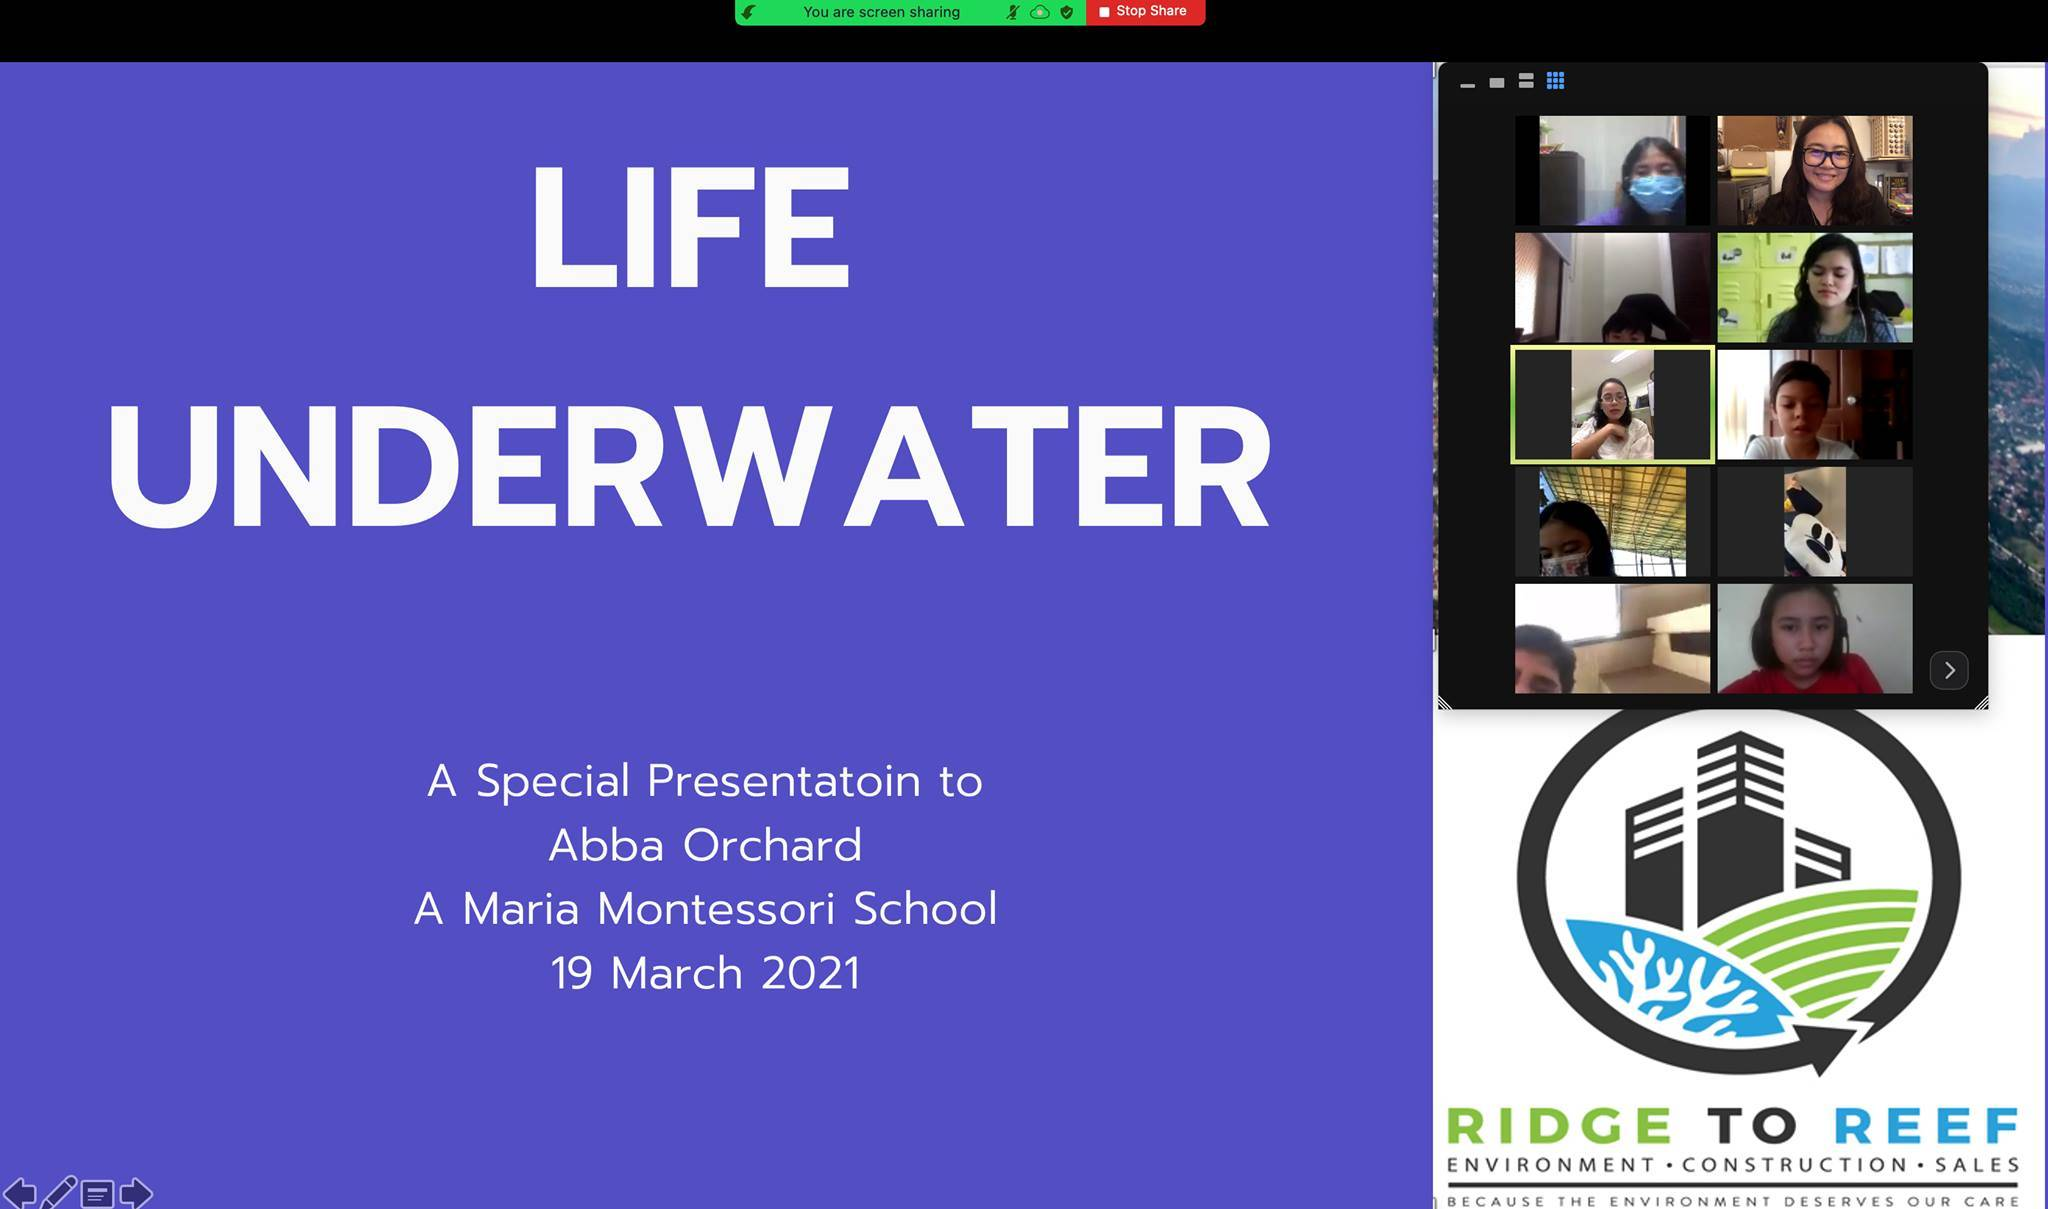 A special presentation of Life Underwater